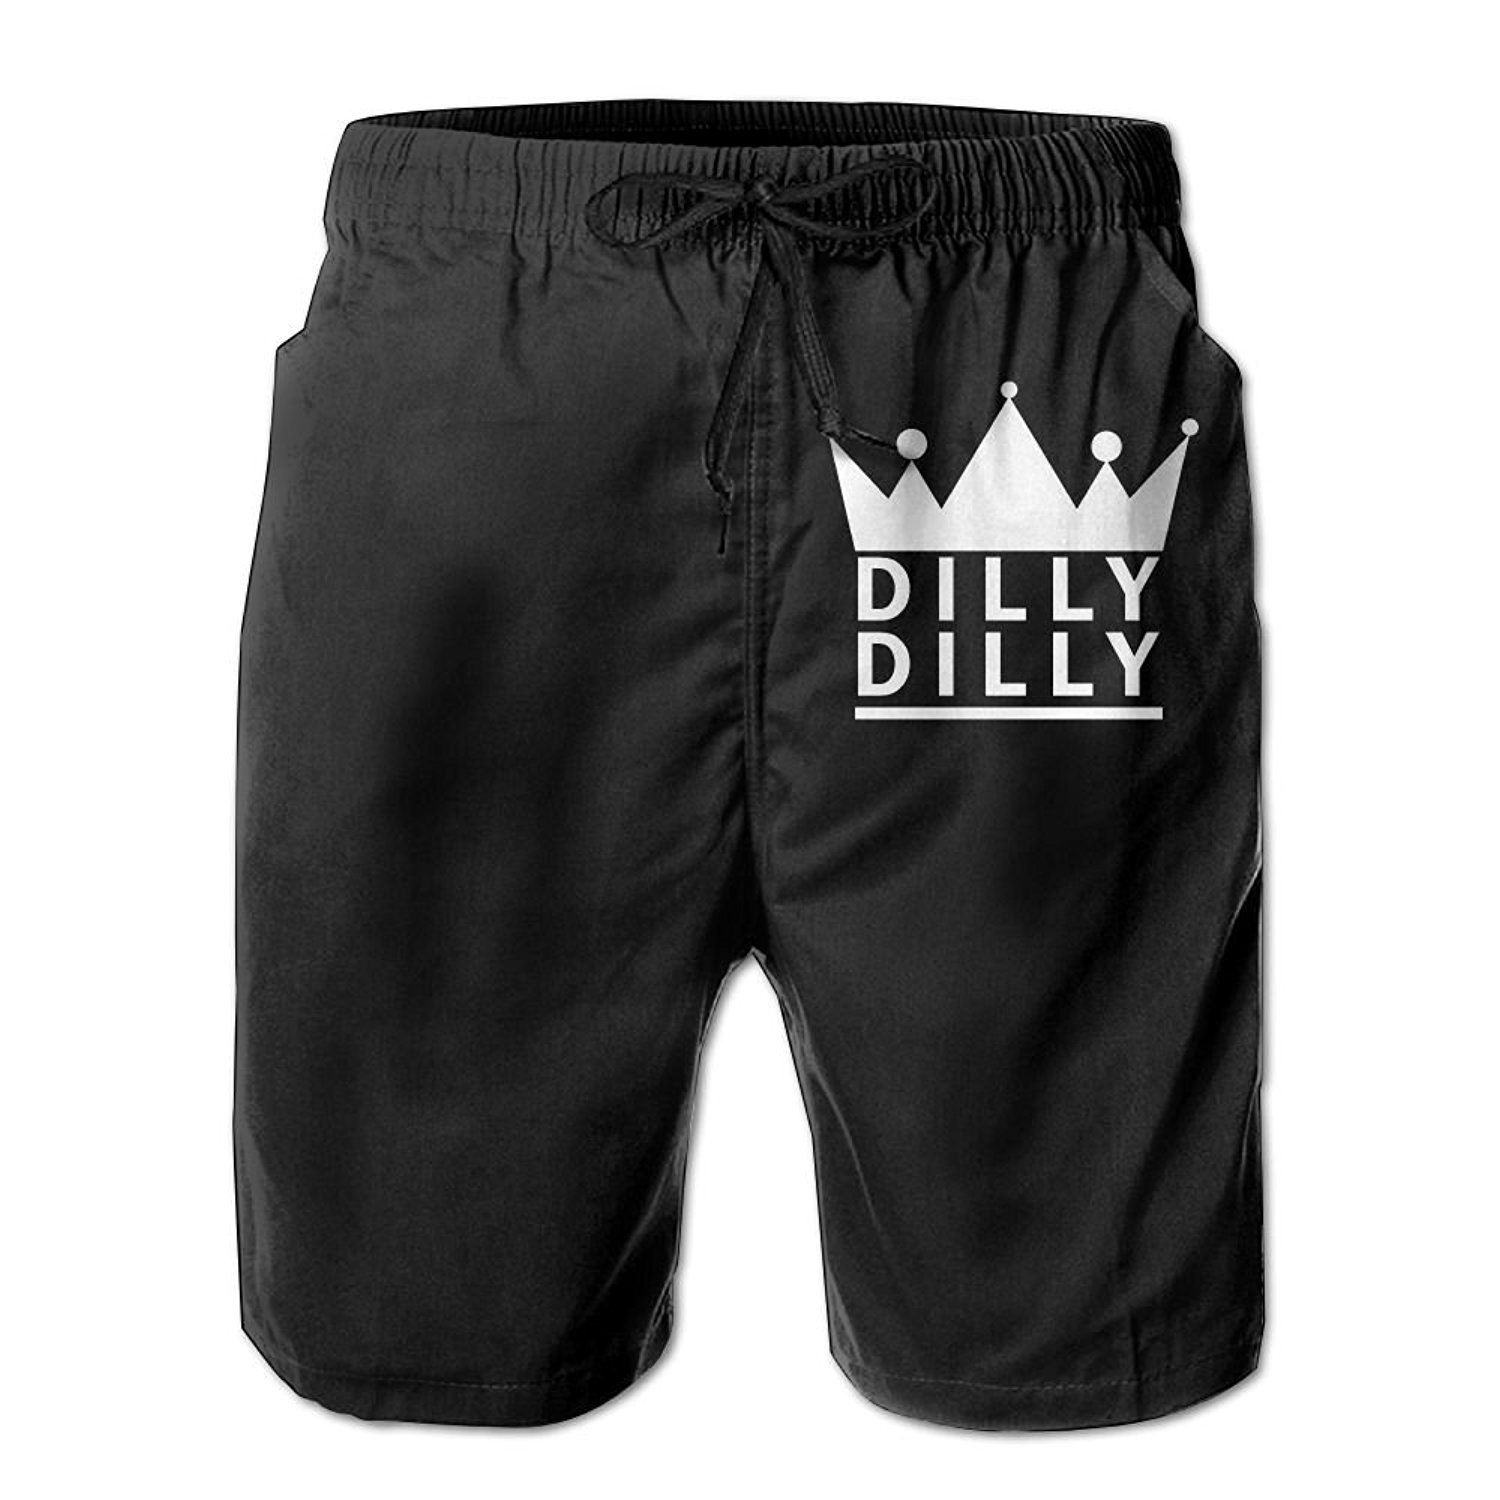 YEYUNSHORT Dilly Dilly Beer Medieval - Men's Shorts Casual Beach Shorts